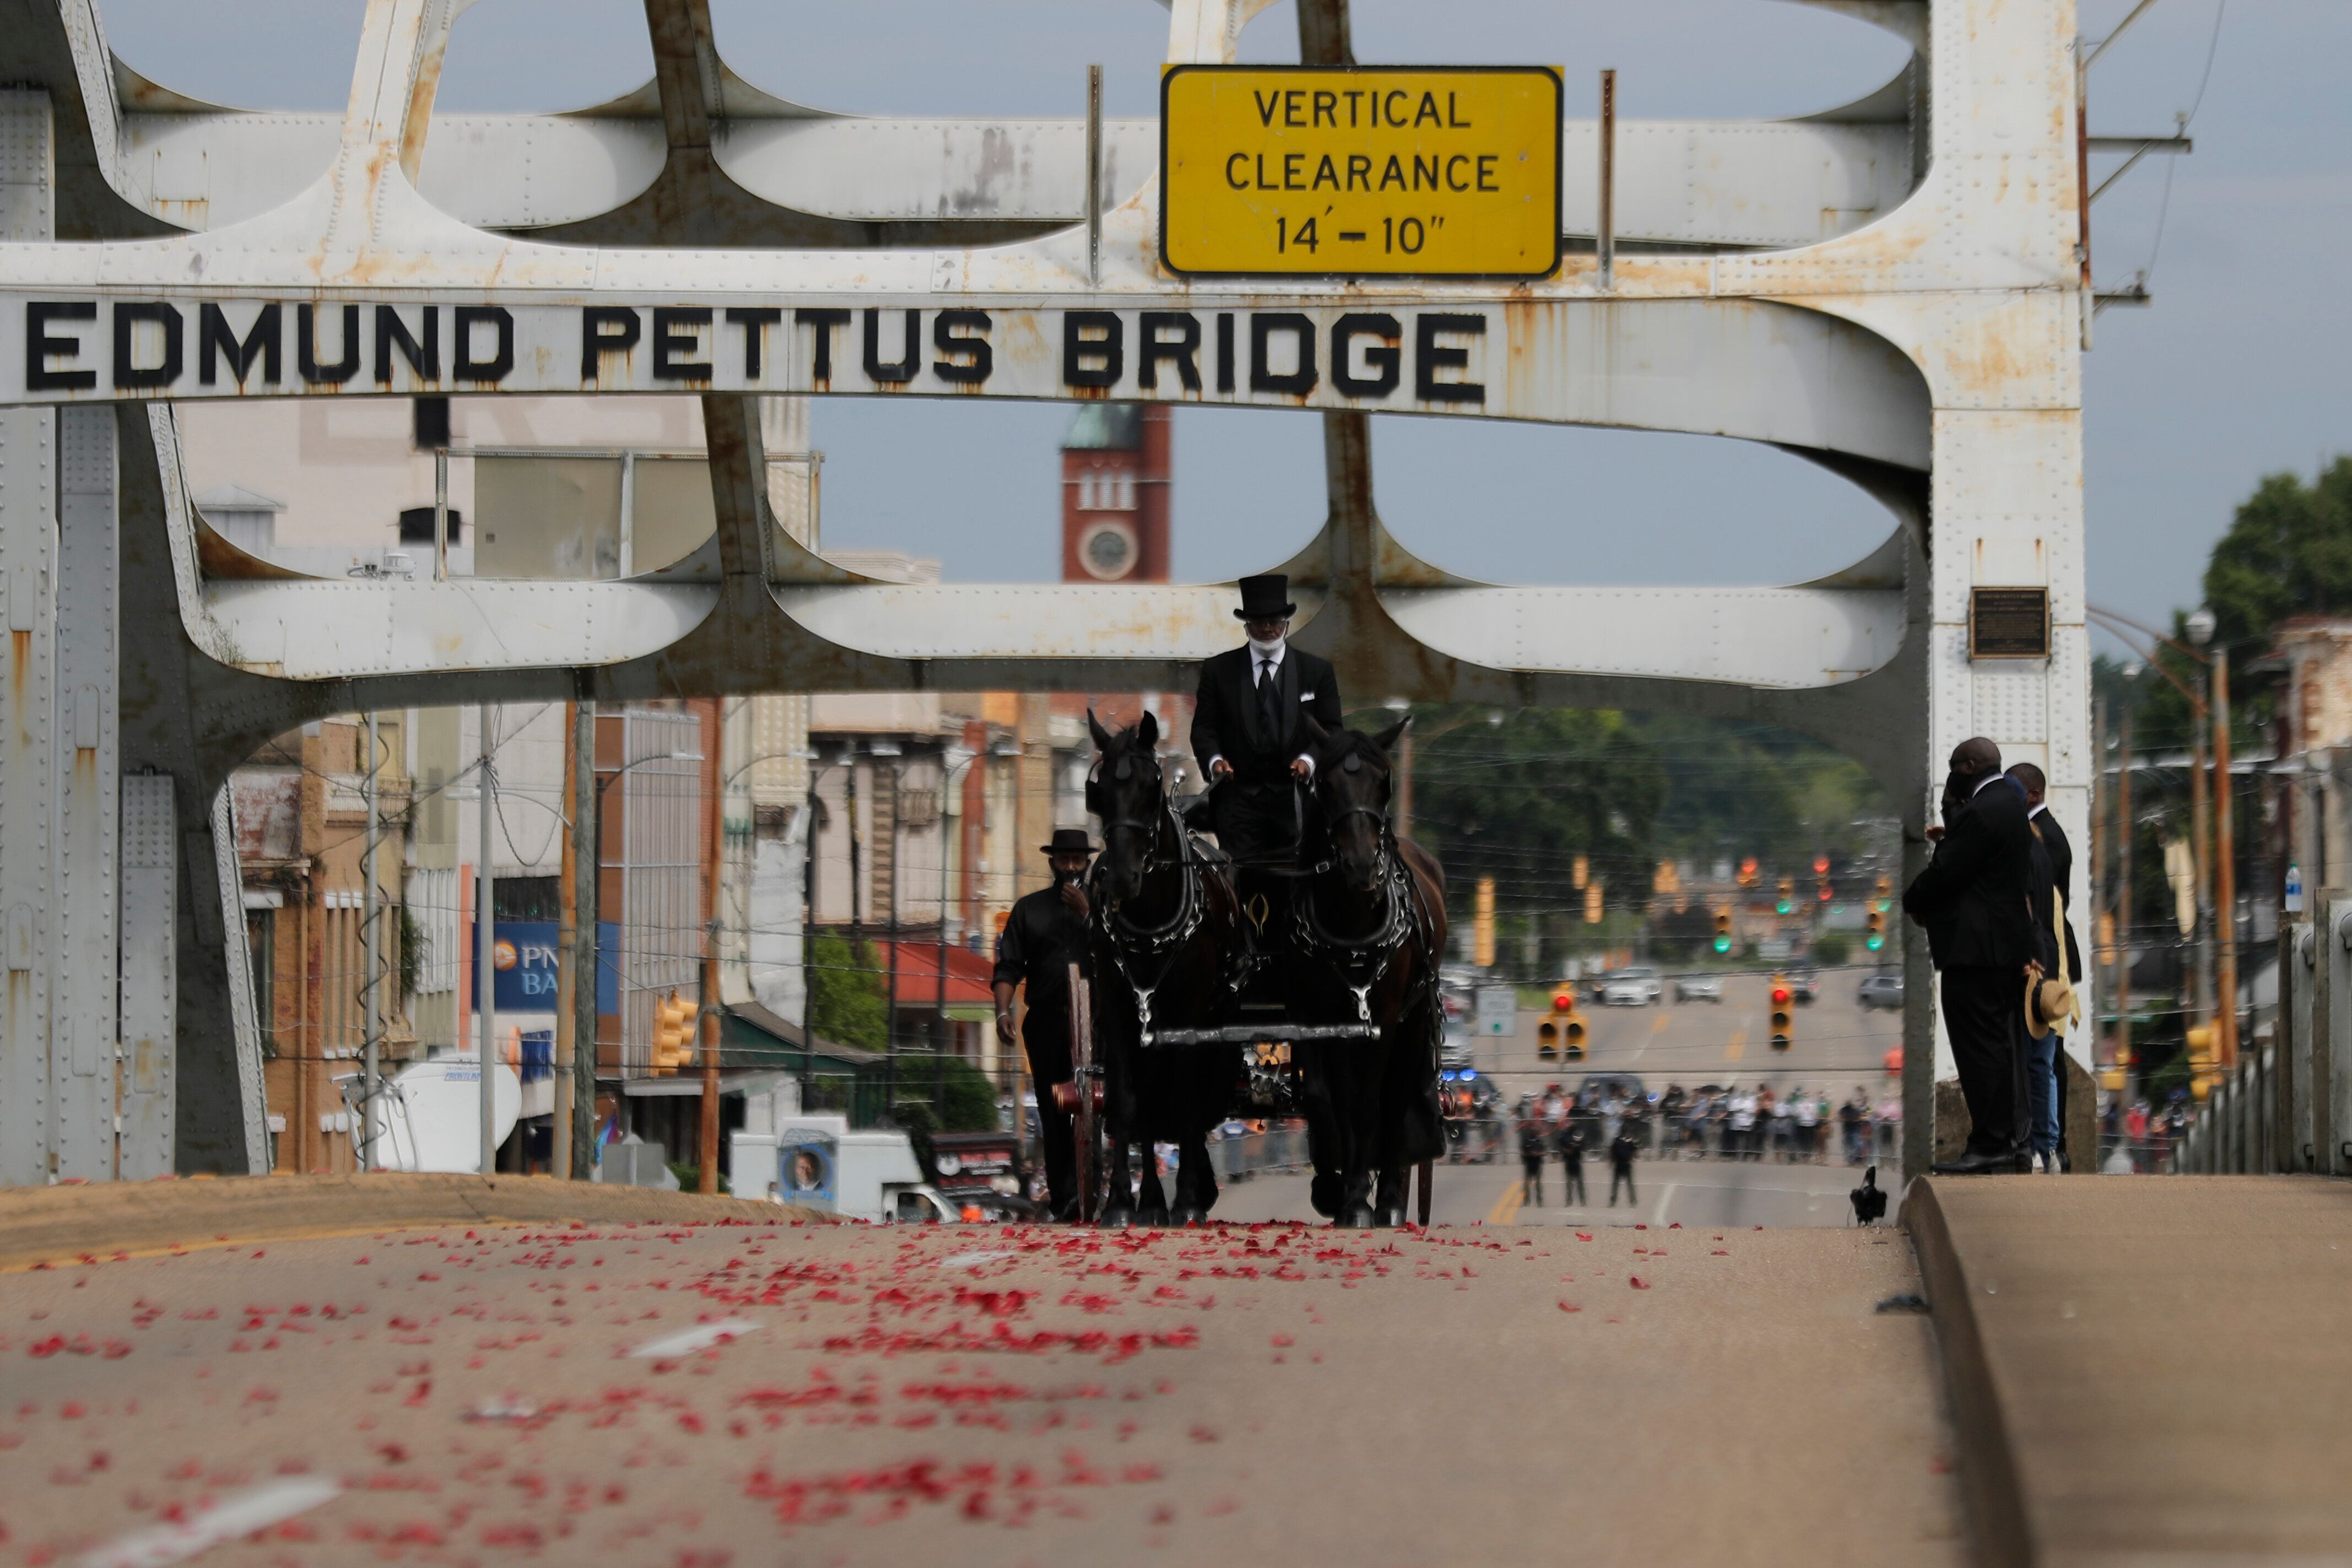 The casket of Rep. John Lewis moves over the Edmund Pettus Bridge by horse-drawn carriage during a memorial service for Lewis